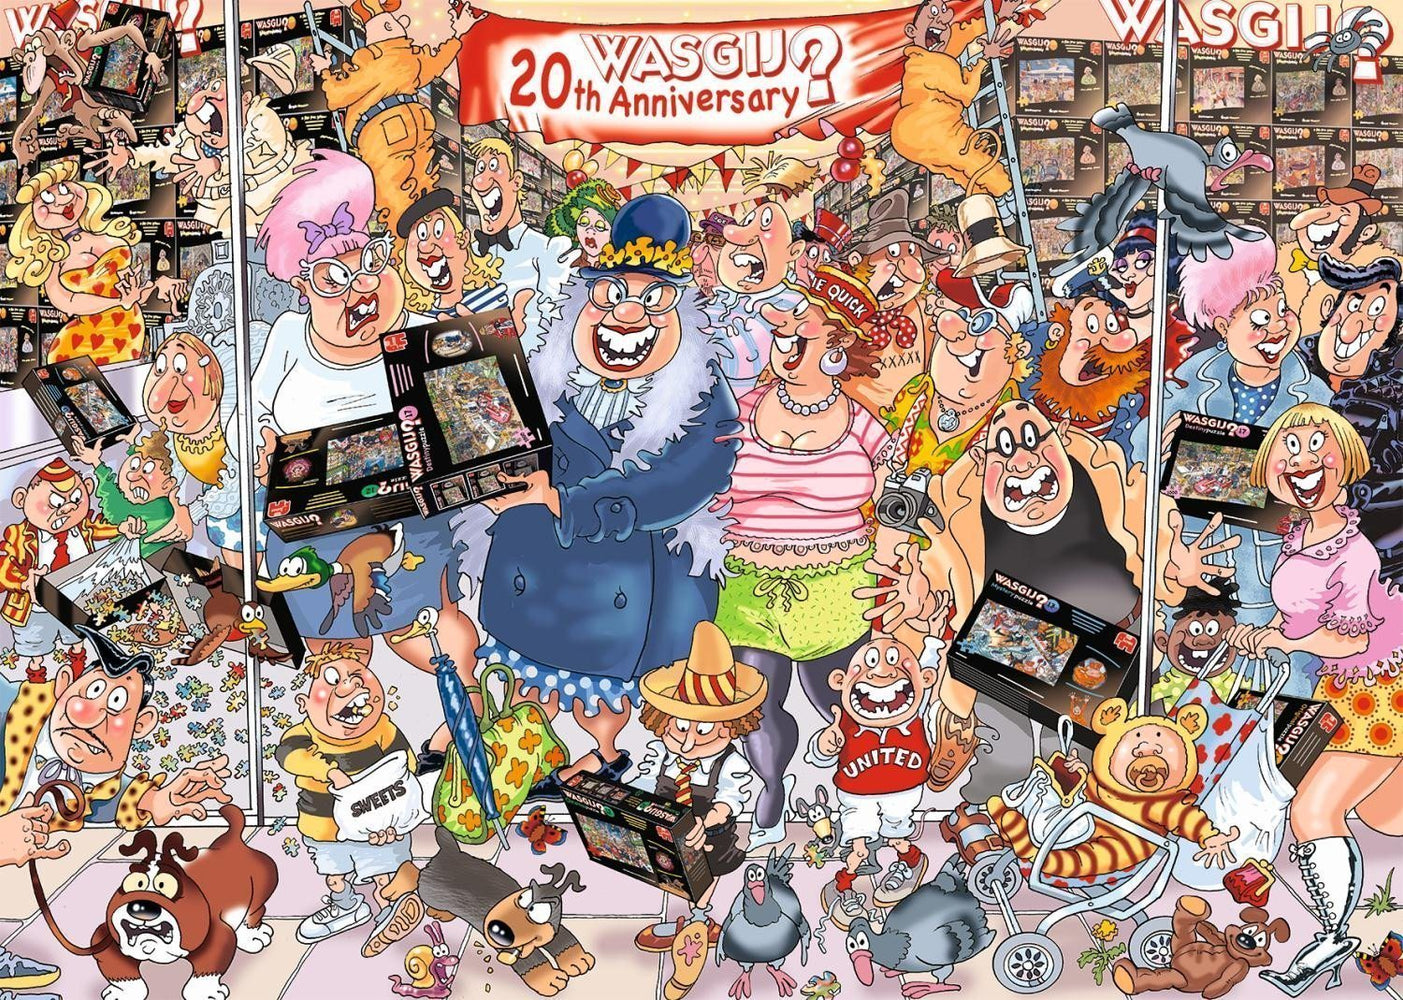 Wasgij 27 Original: The 20th Birthday Parade! 2 x 1000 Piece Jigsaw Puzzles - (Inc Free 1000 Piece Puzzle) - All Jigsaw Puzzles